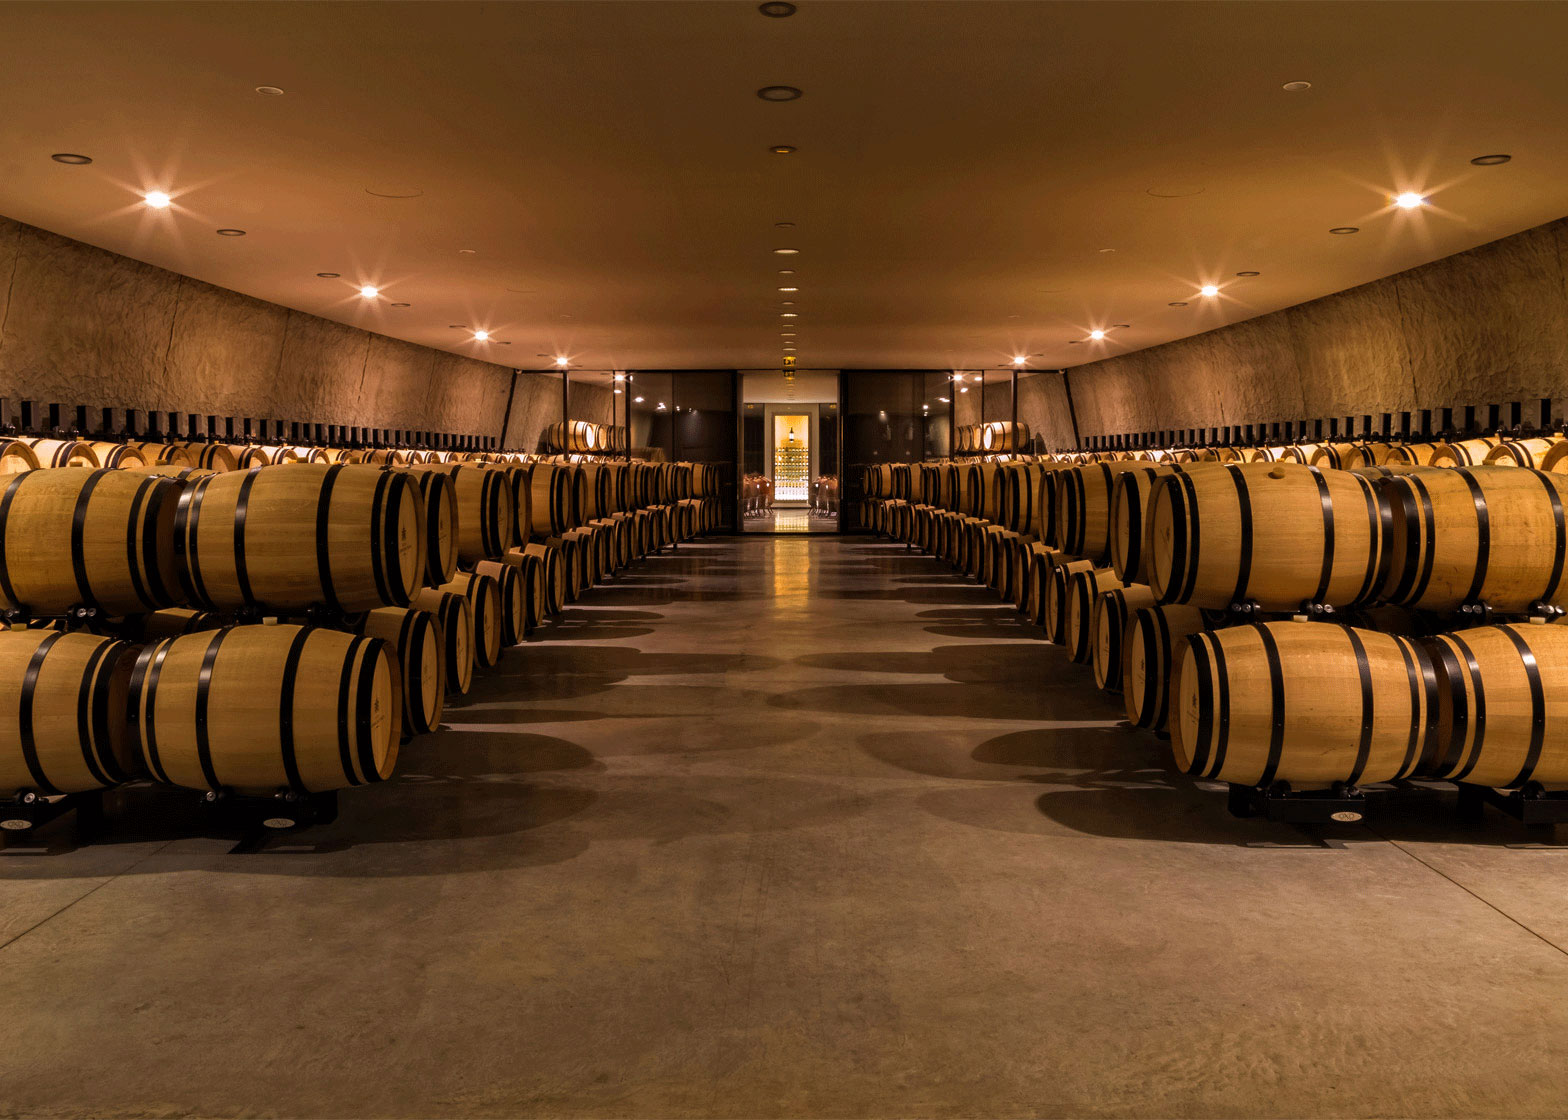 Chateau Les Carmes Haut Brion, Wine Cellar, Philippe Starck, Bordeaux, France, Alucobond naturAL Finesse, Photography Philippe Labegurie